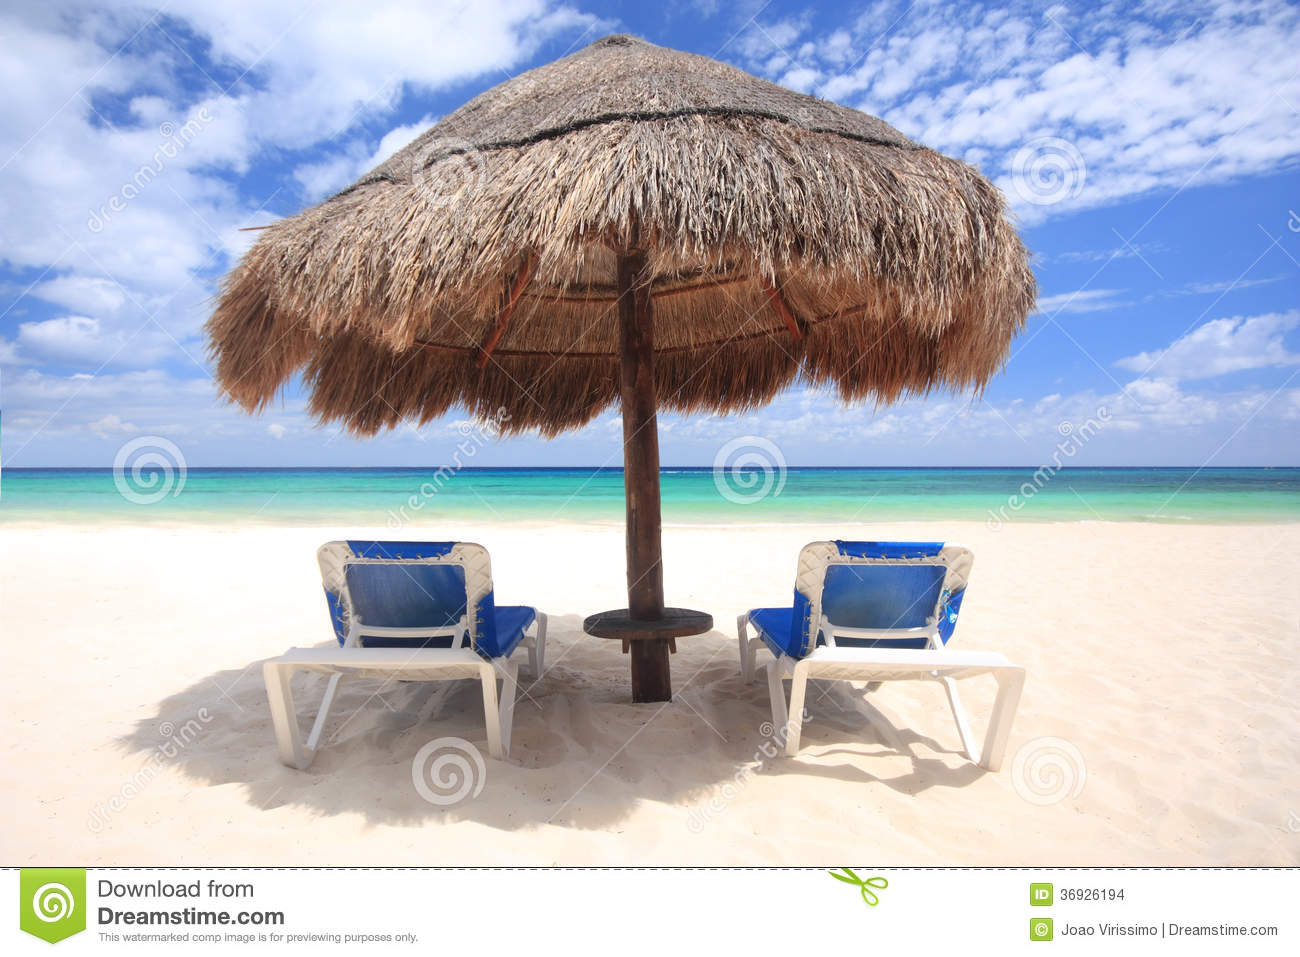 beach chairs under palapa thatched umbrella stock images image 36926194. Black Bedroom Furniture Sets. Home Design Ideas